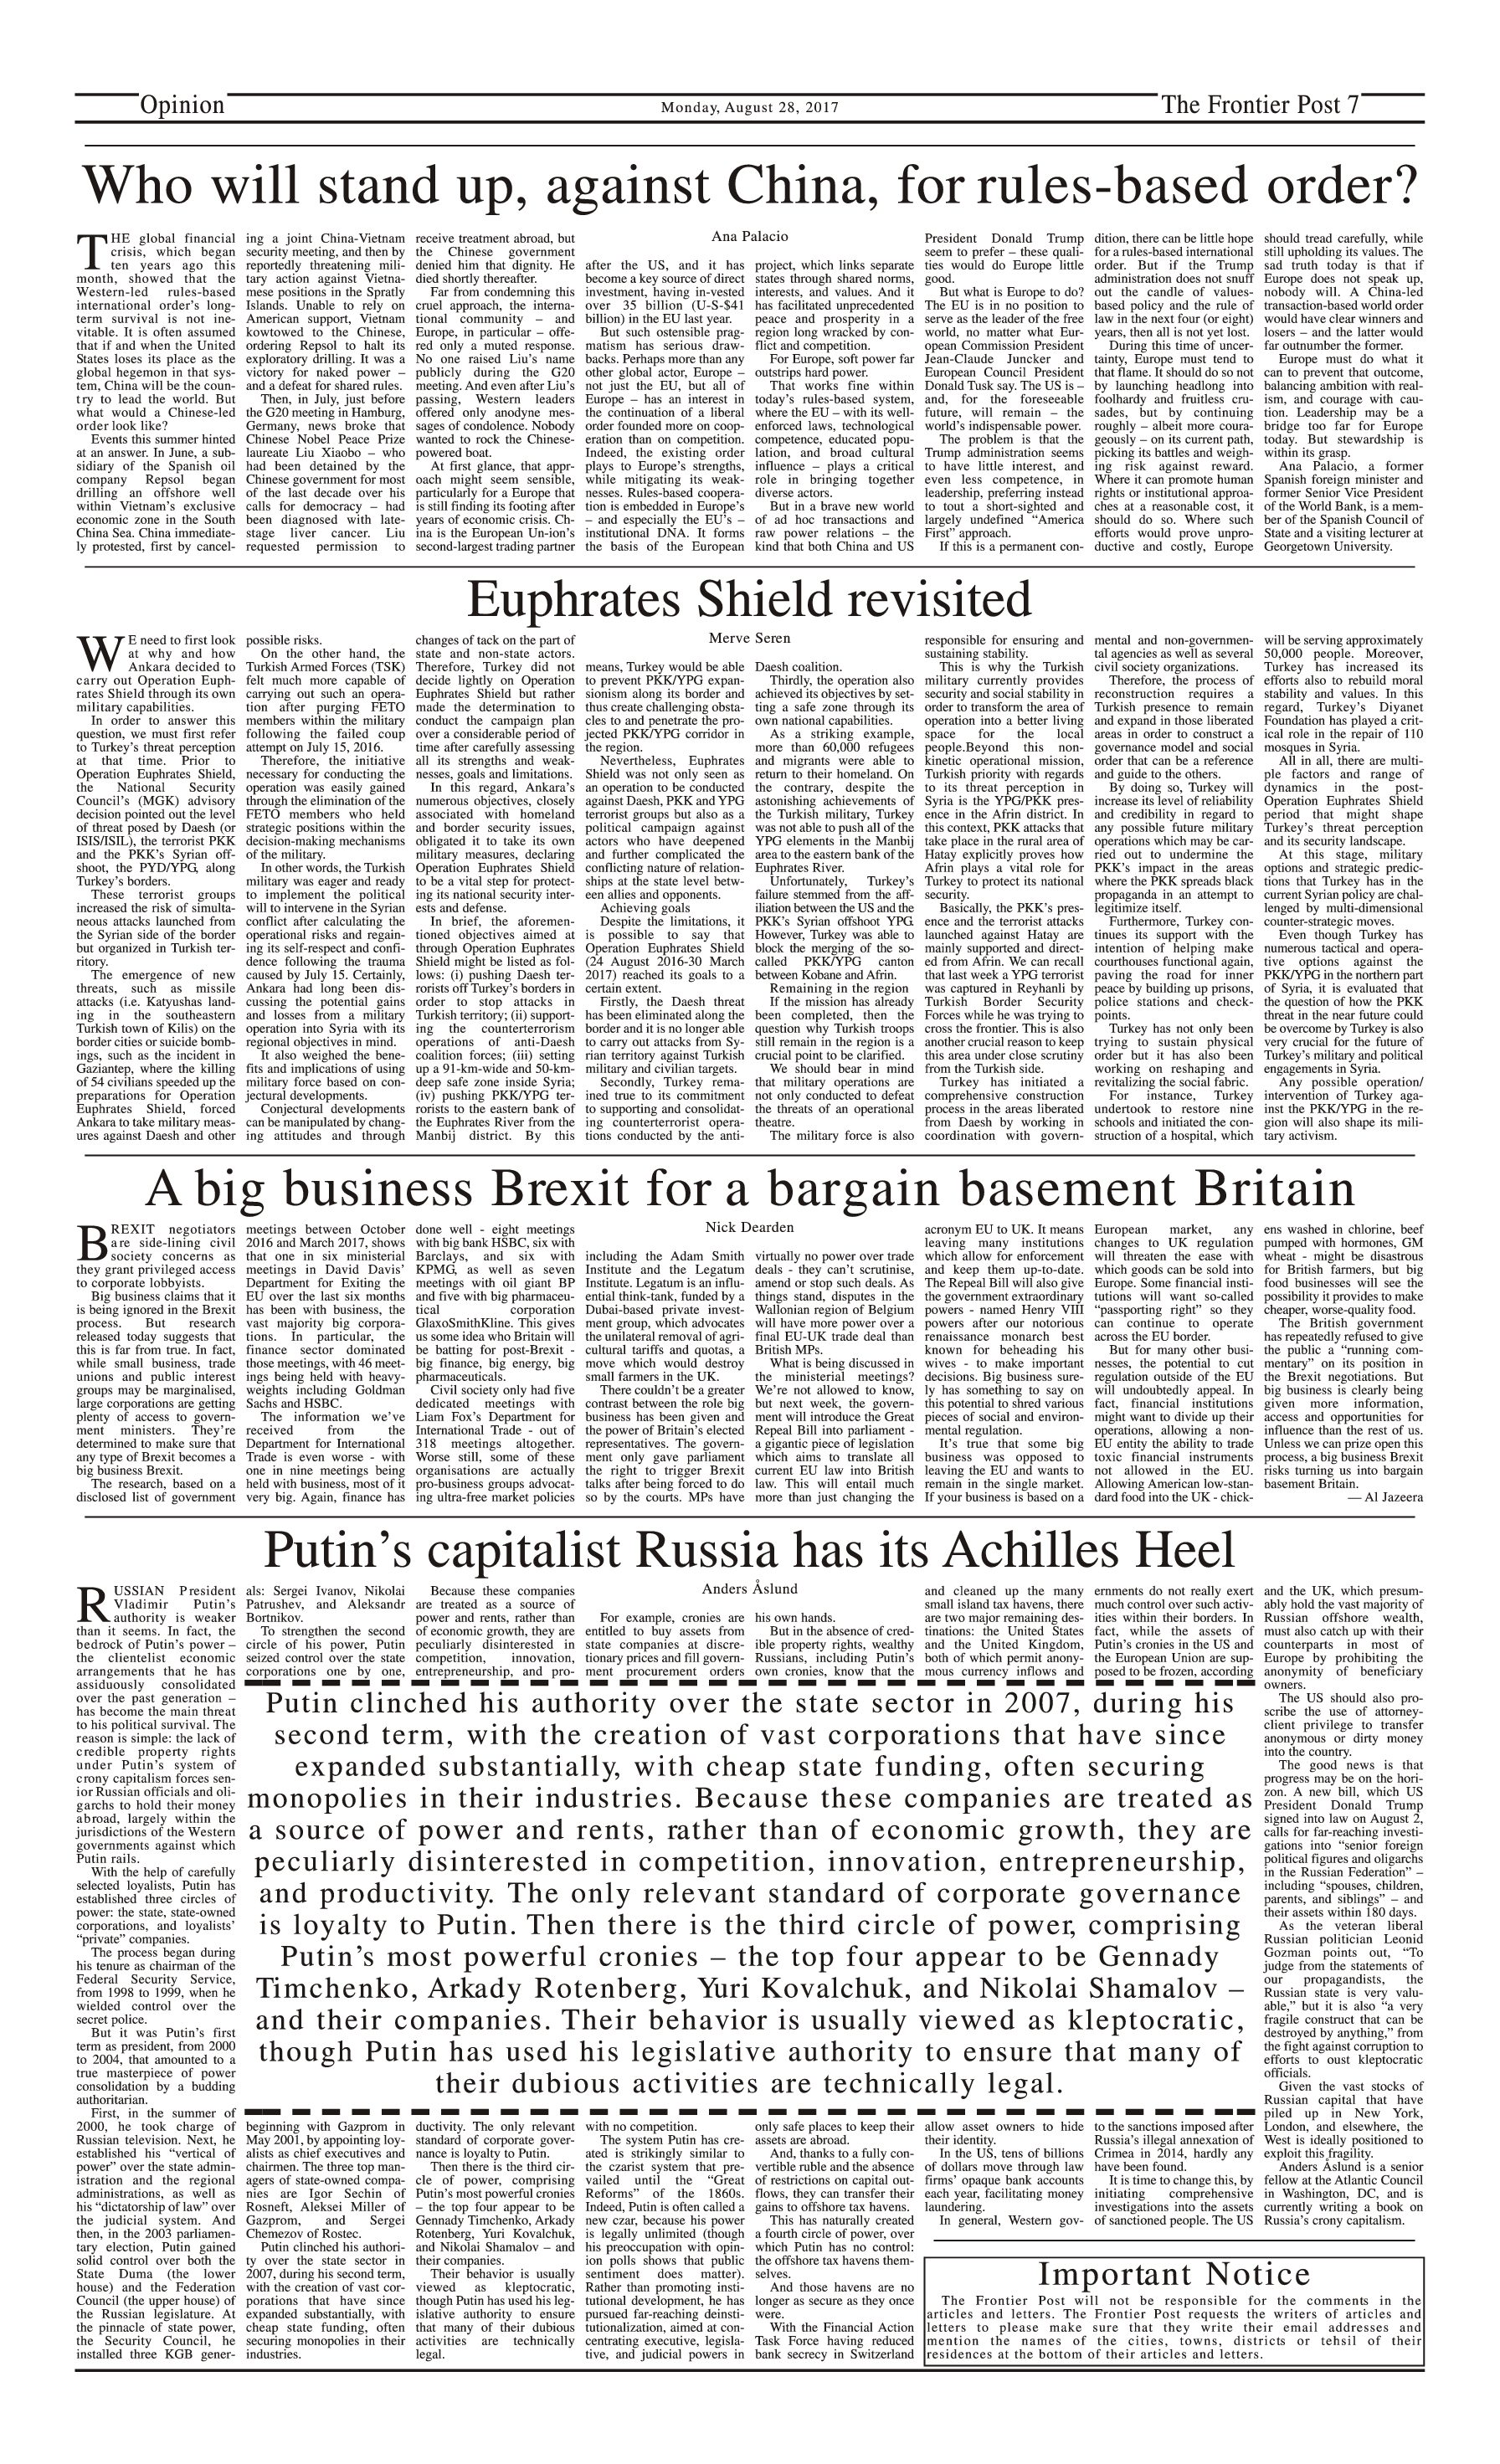 Opinion Page 28